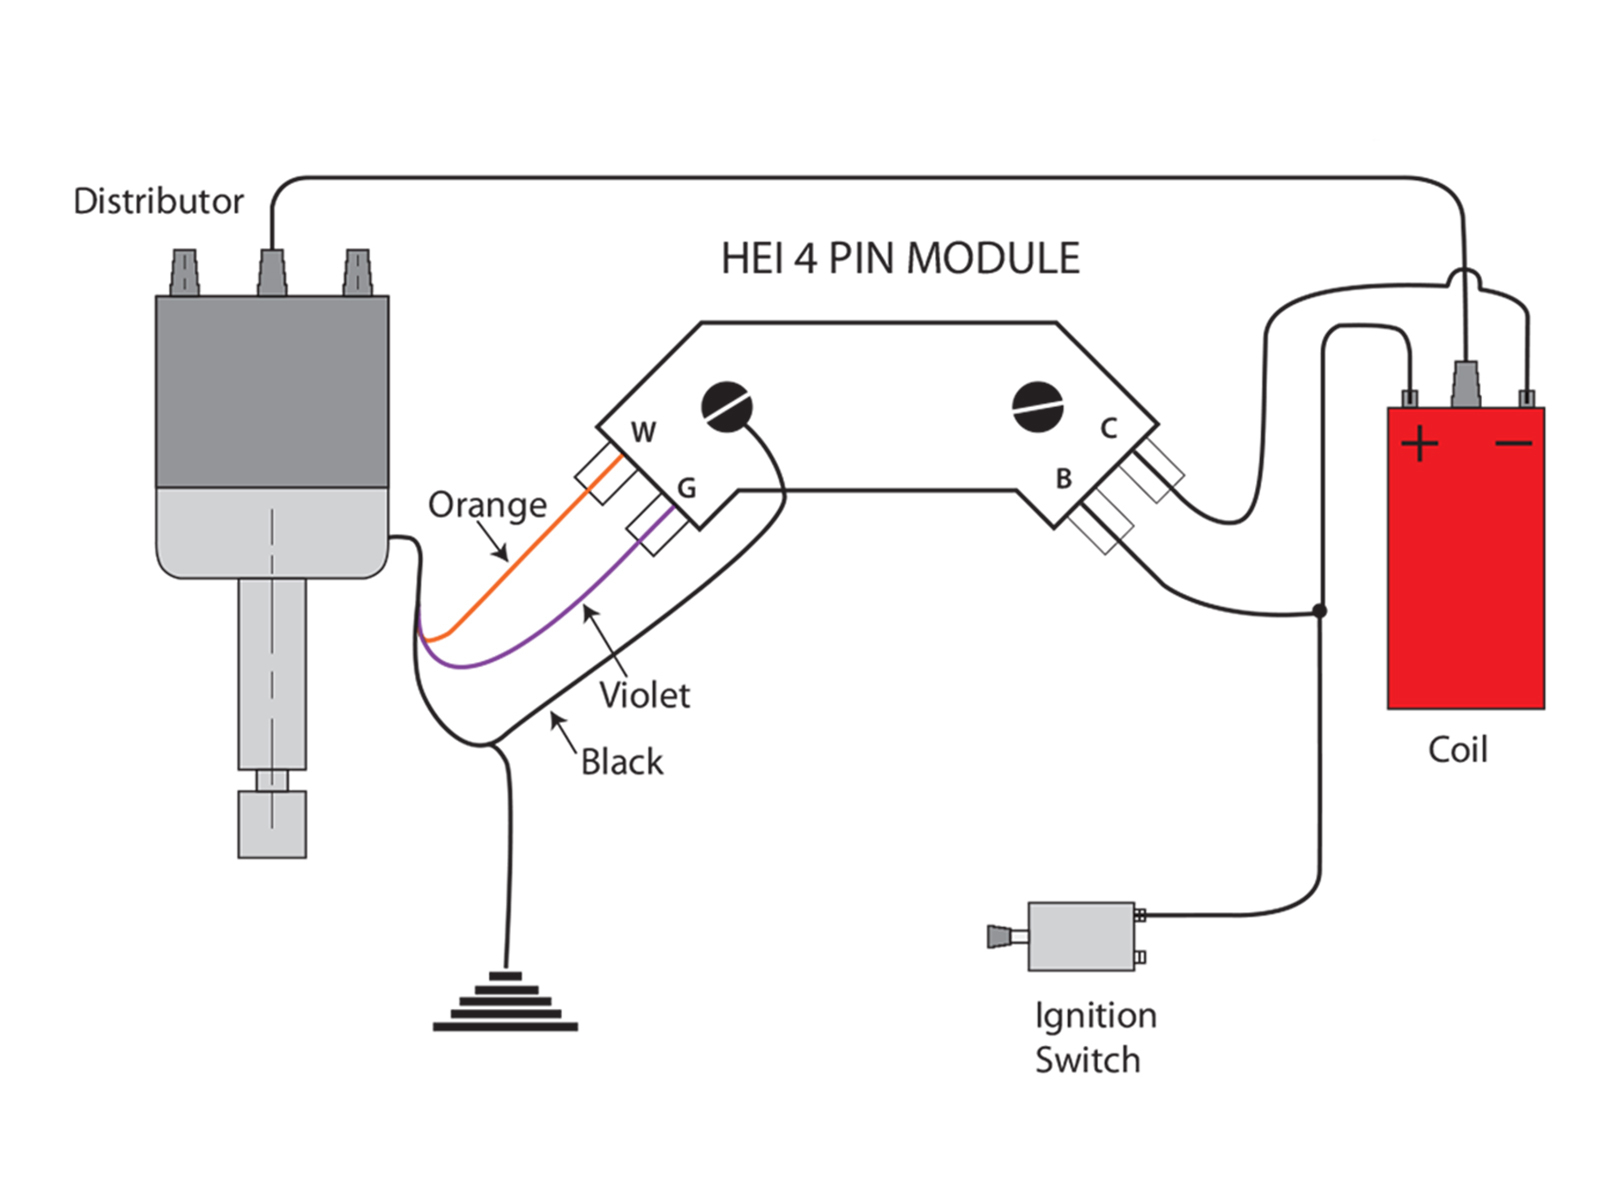 Hei Distributor Wire Diagram For Mopar | Manual E-Books - Hei Distributor Wiring Diagram